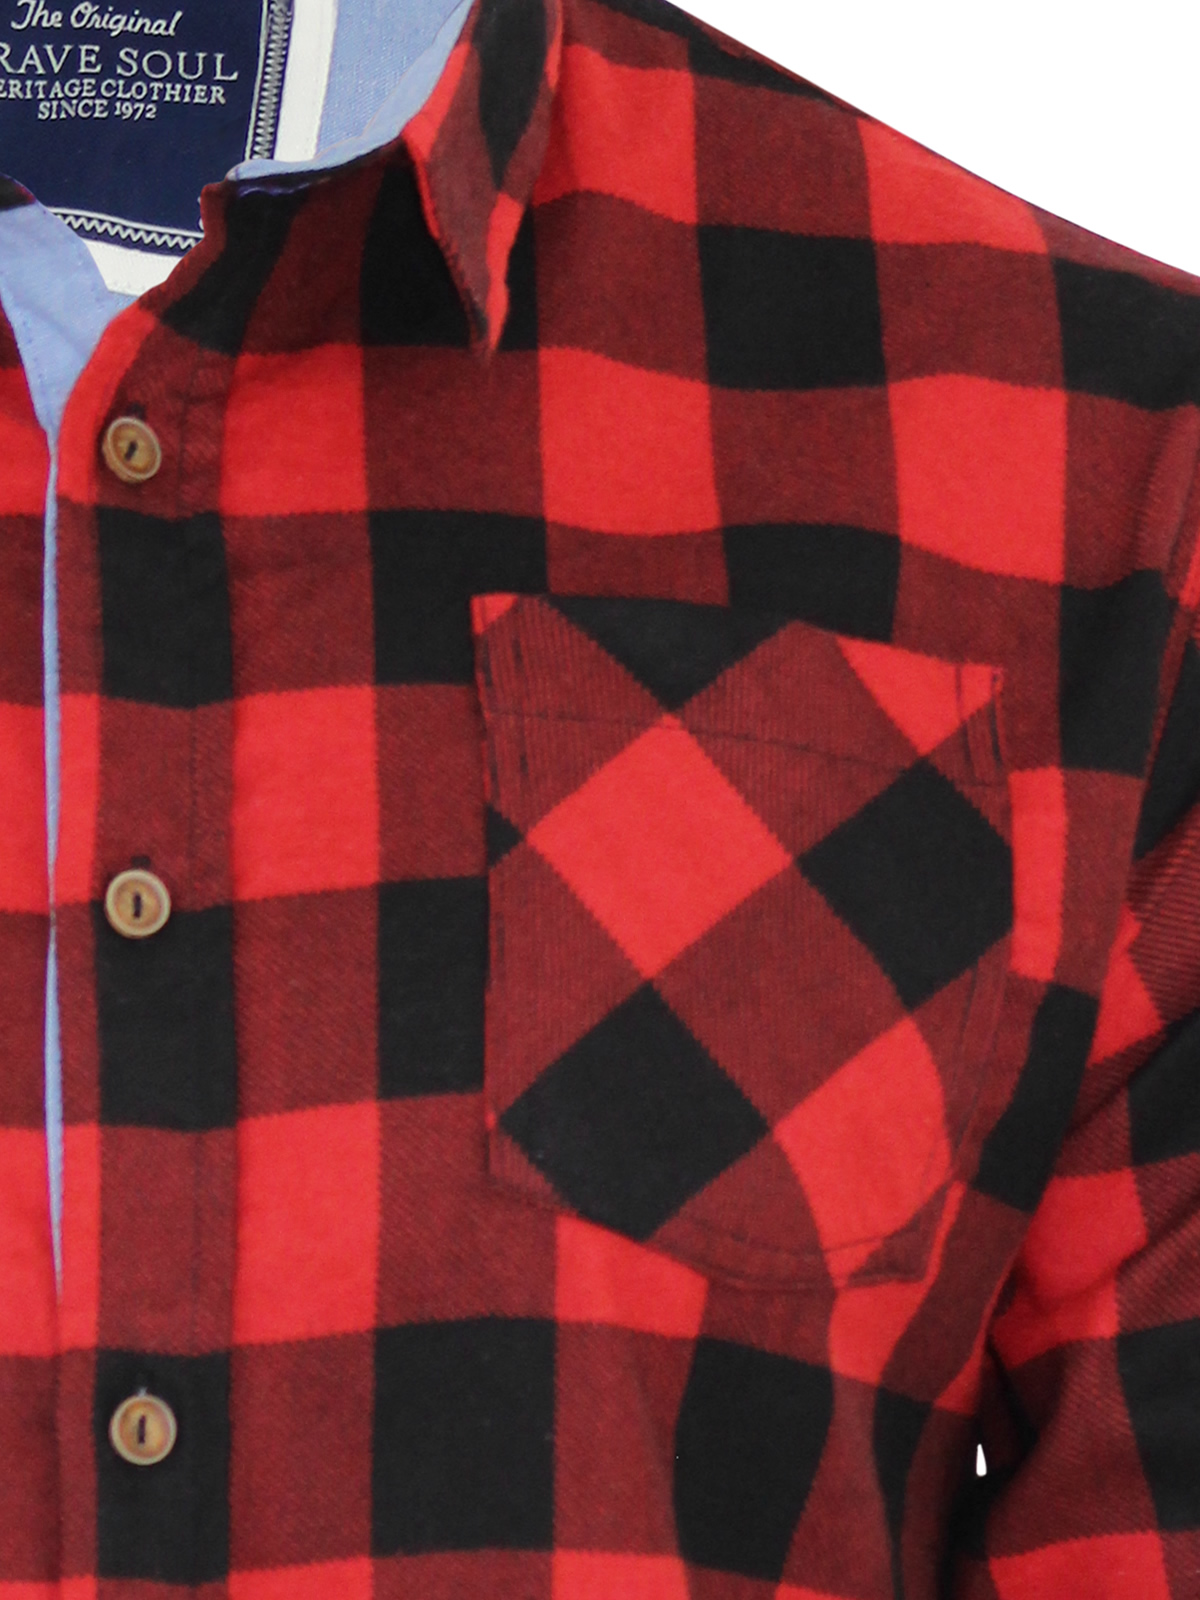 Mens-Check-Shirt-Brave-Soul-Jack-Flannel-Brushed-Cotton-Long-Sleeve-Casual-Top thumbnail 4